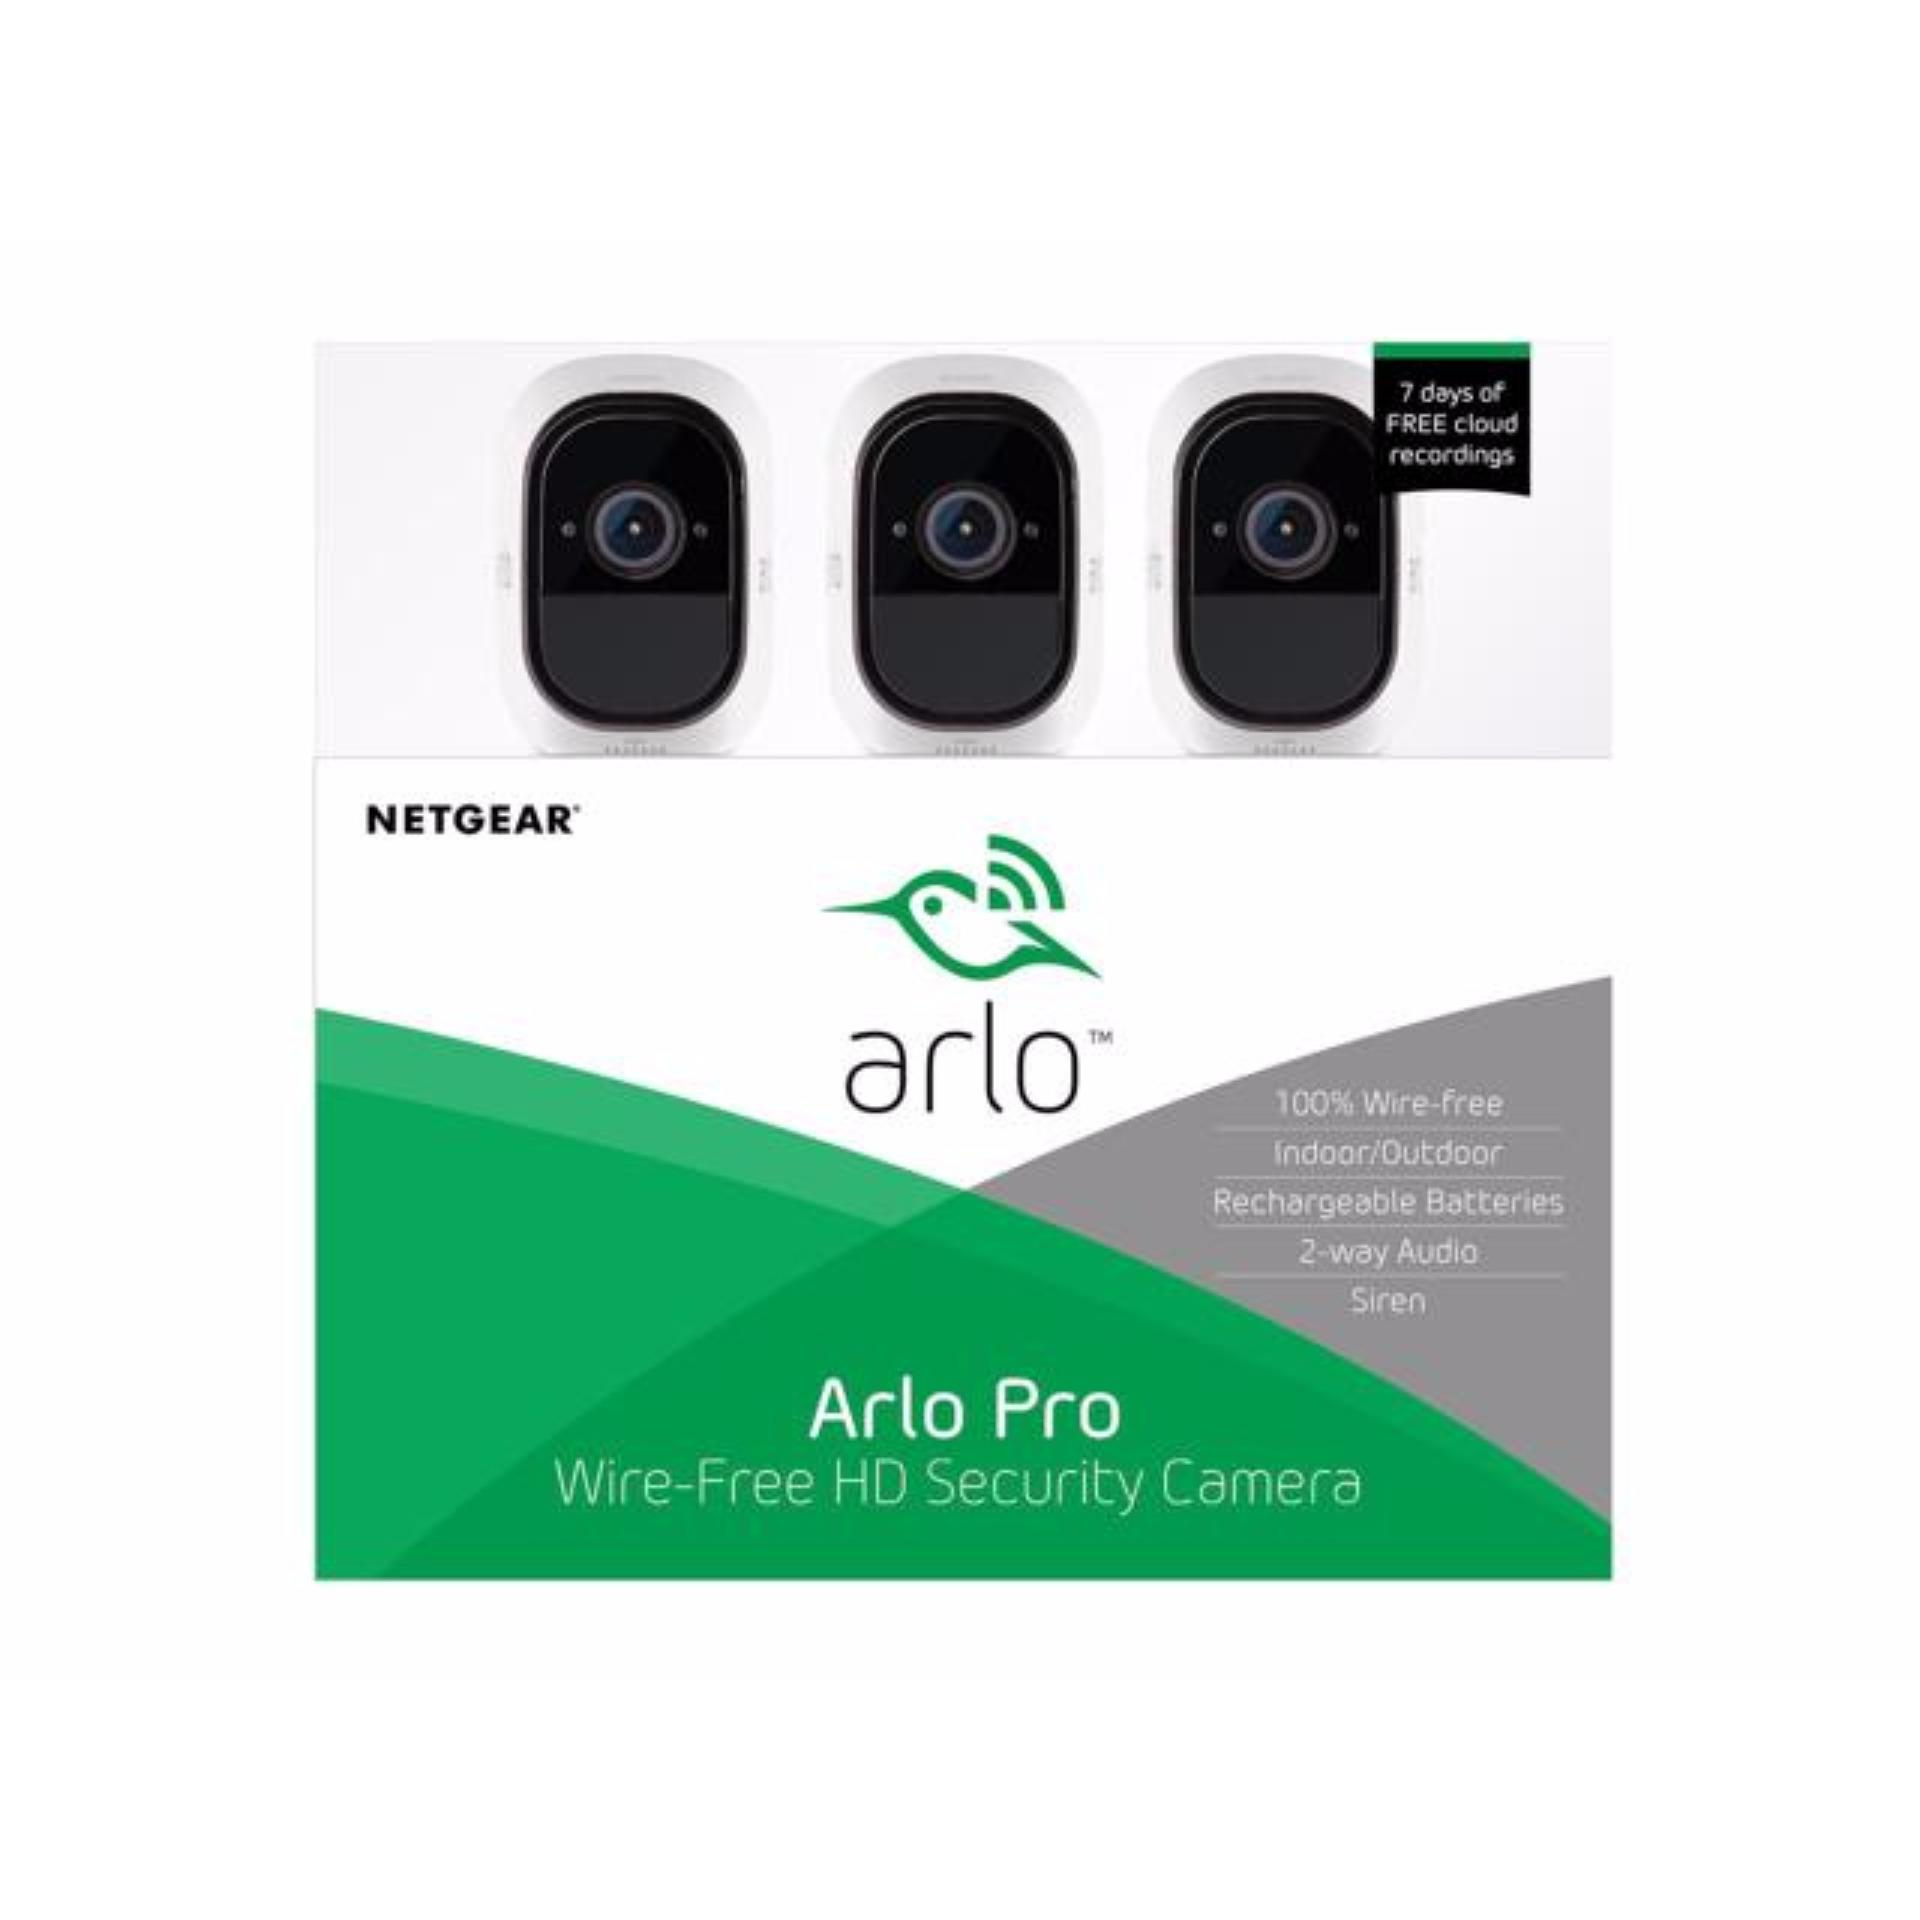 NETGEAR VMS4330 Arlo Pro Security System 3 Rechargeable Wire-Free HD Night Vision Indoor / Outdoor Security Camera with Audio and...